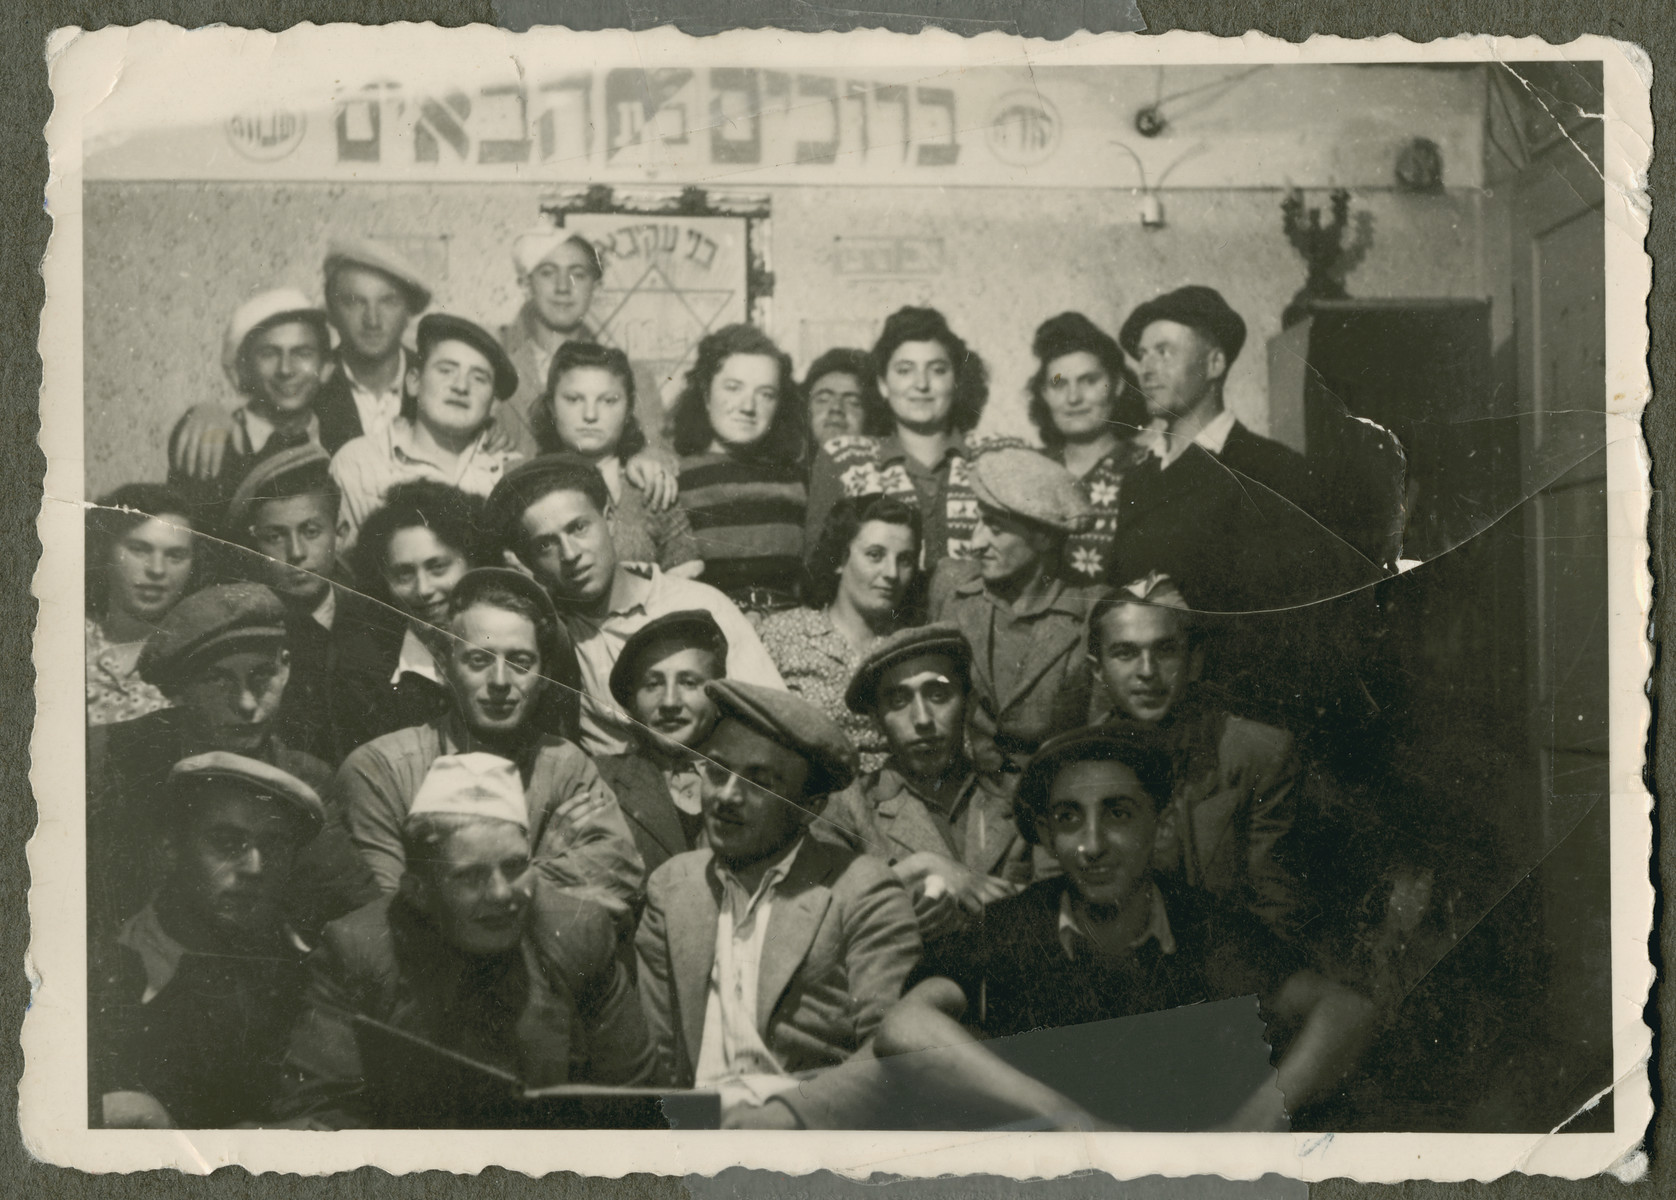 Group portrait of members of the Bnai Akiva kibbutz in Foehrenwald.  Among those pictured is Peretz Feder, standing in the back on the far right.